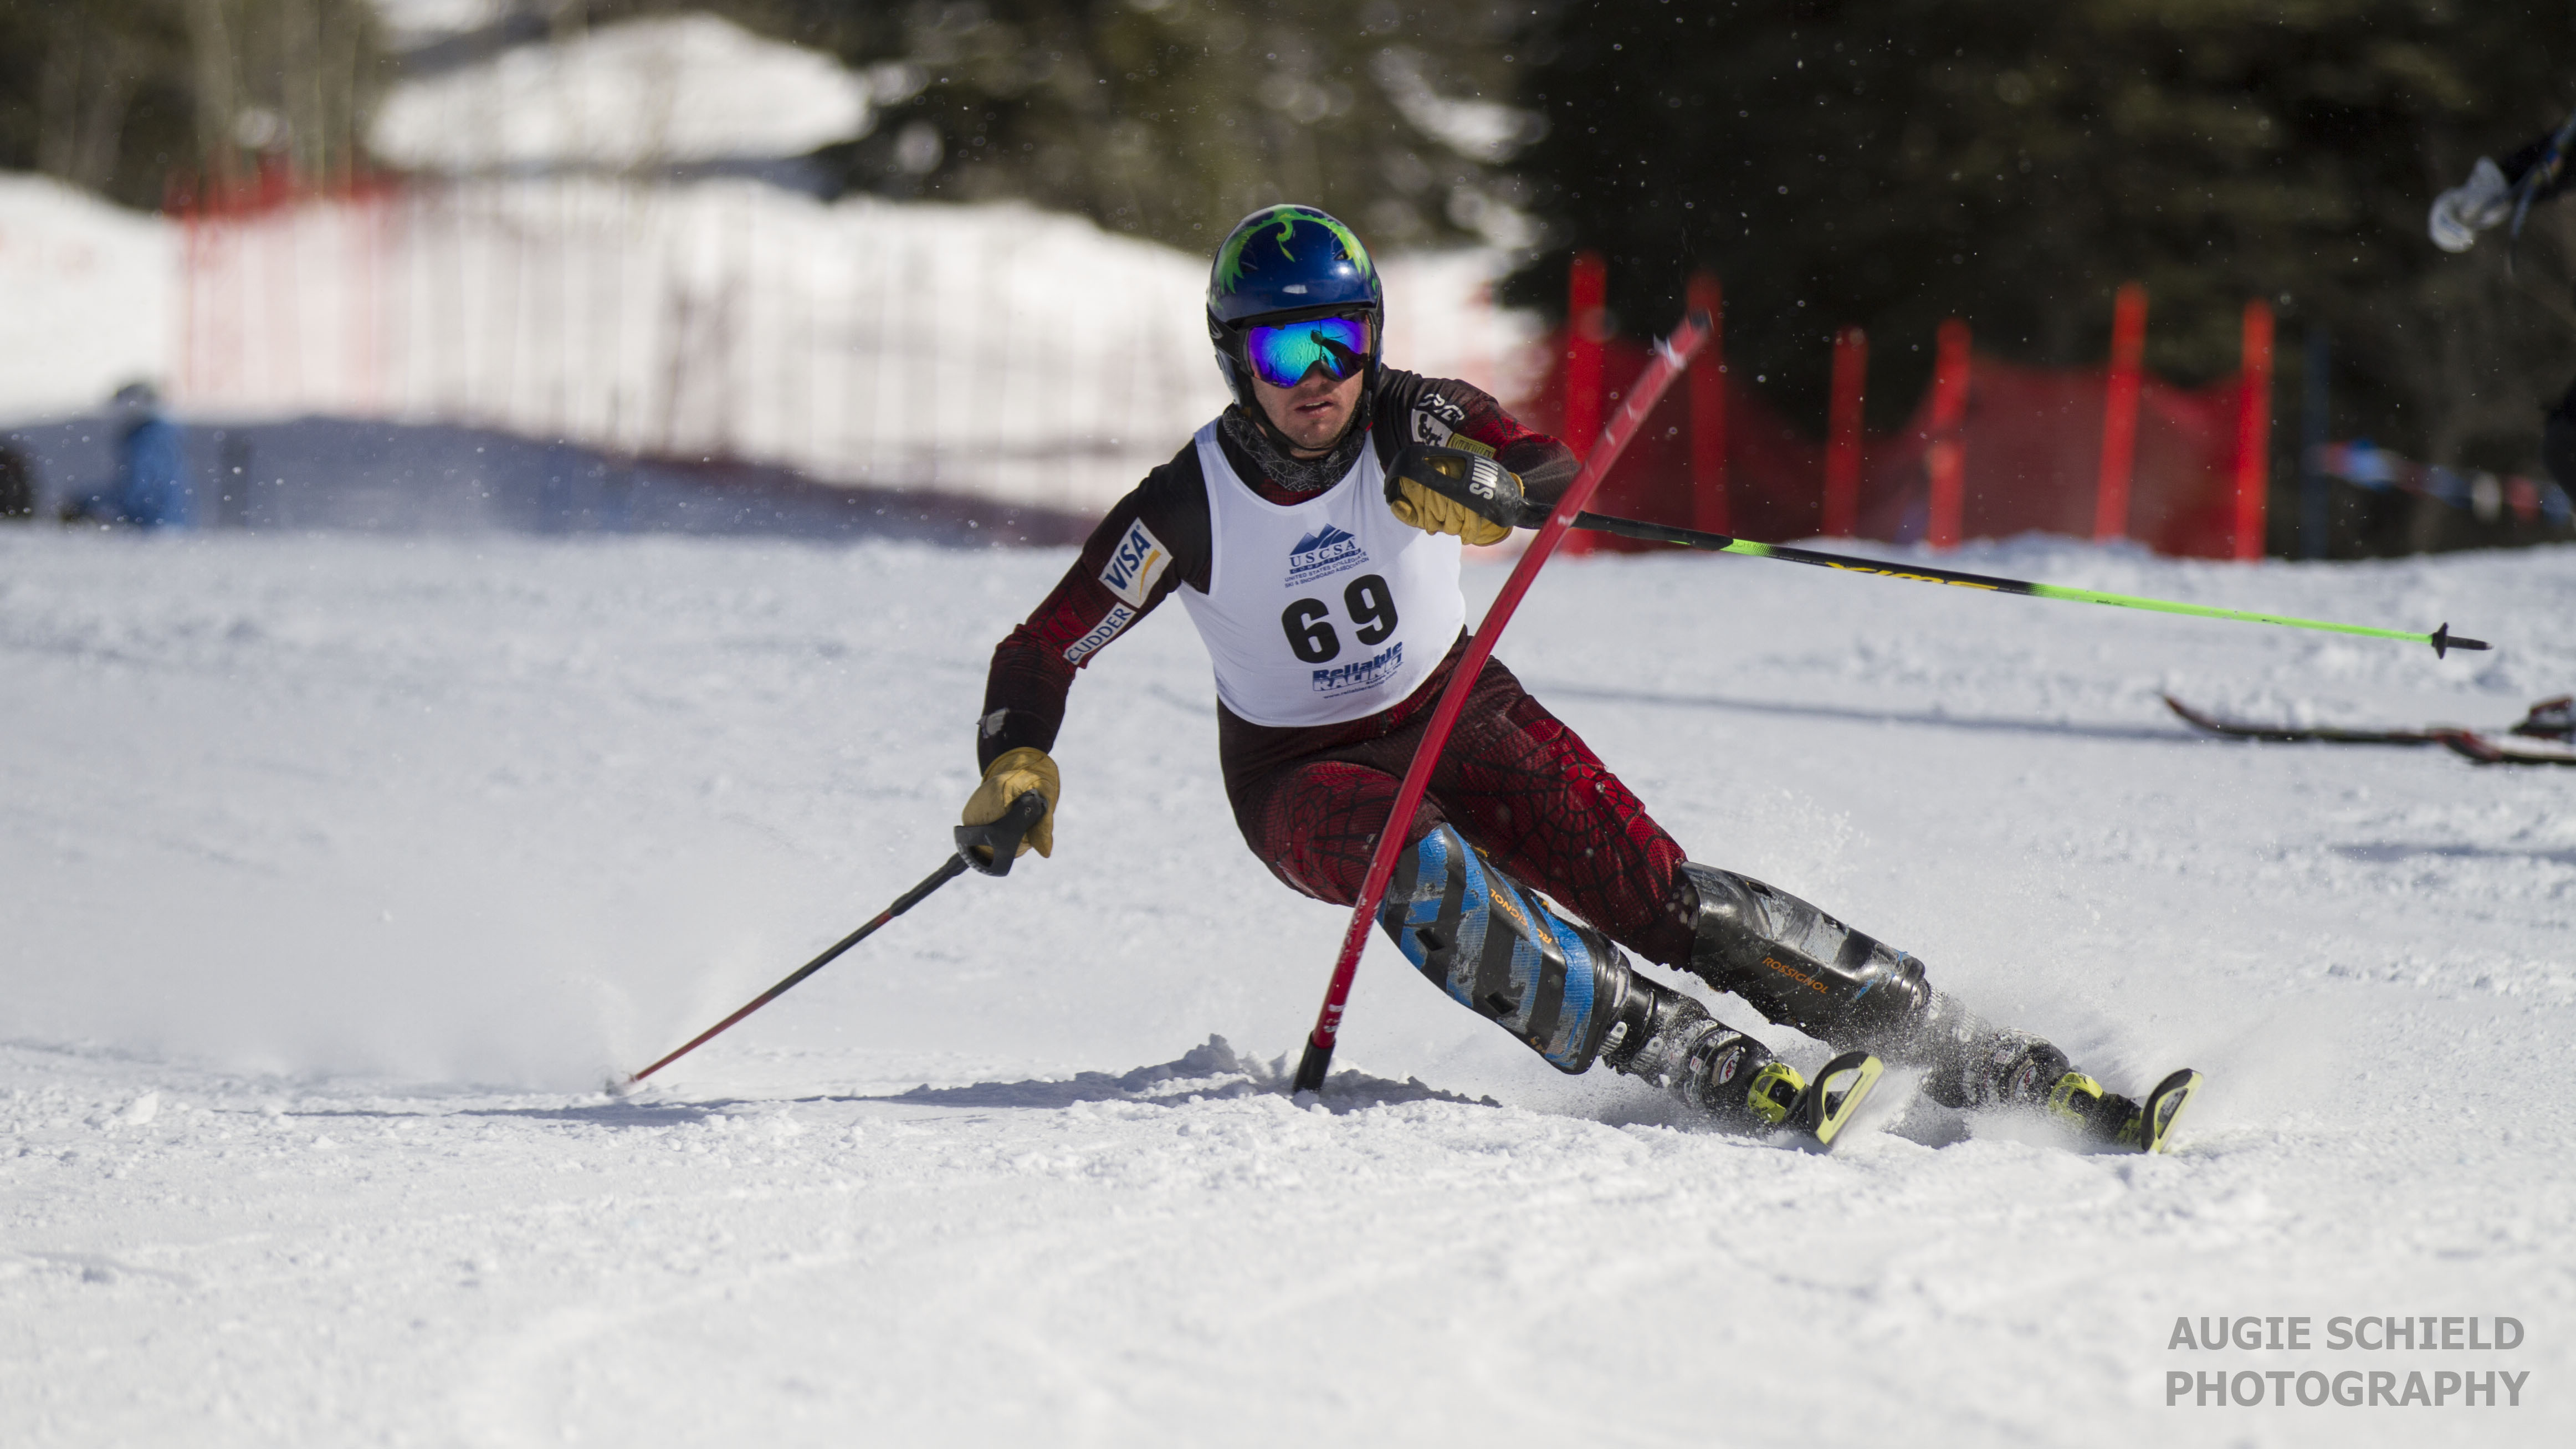 ski team racer on slalom